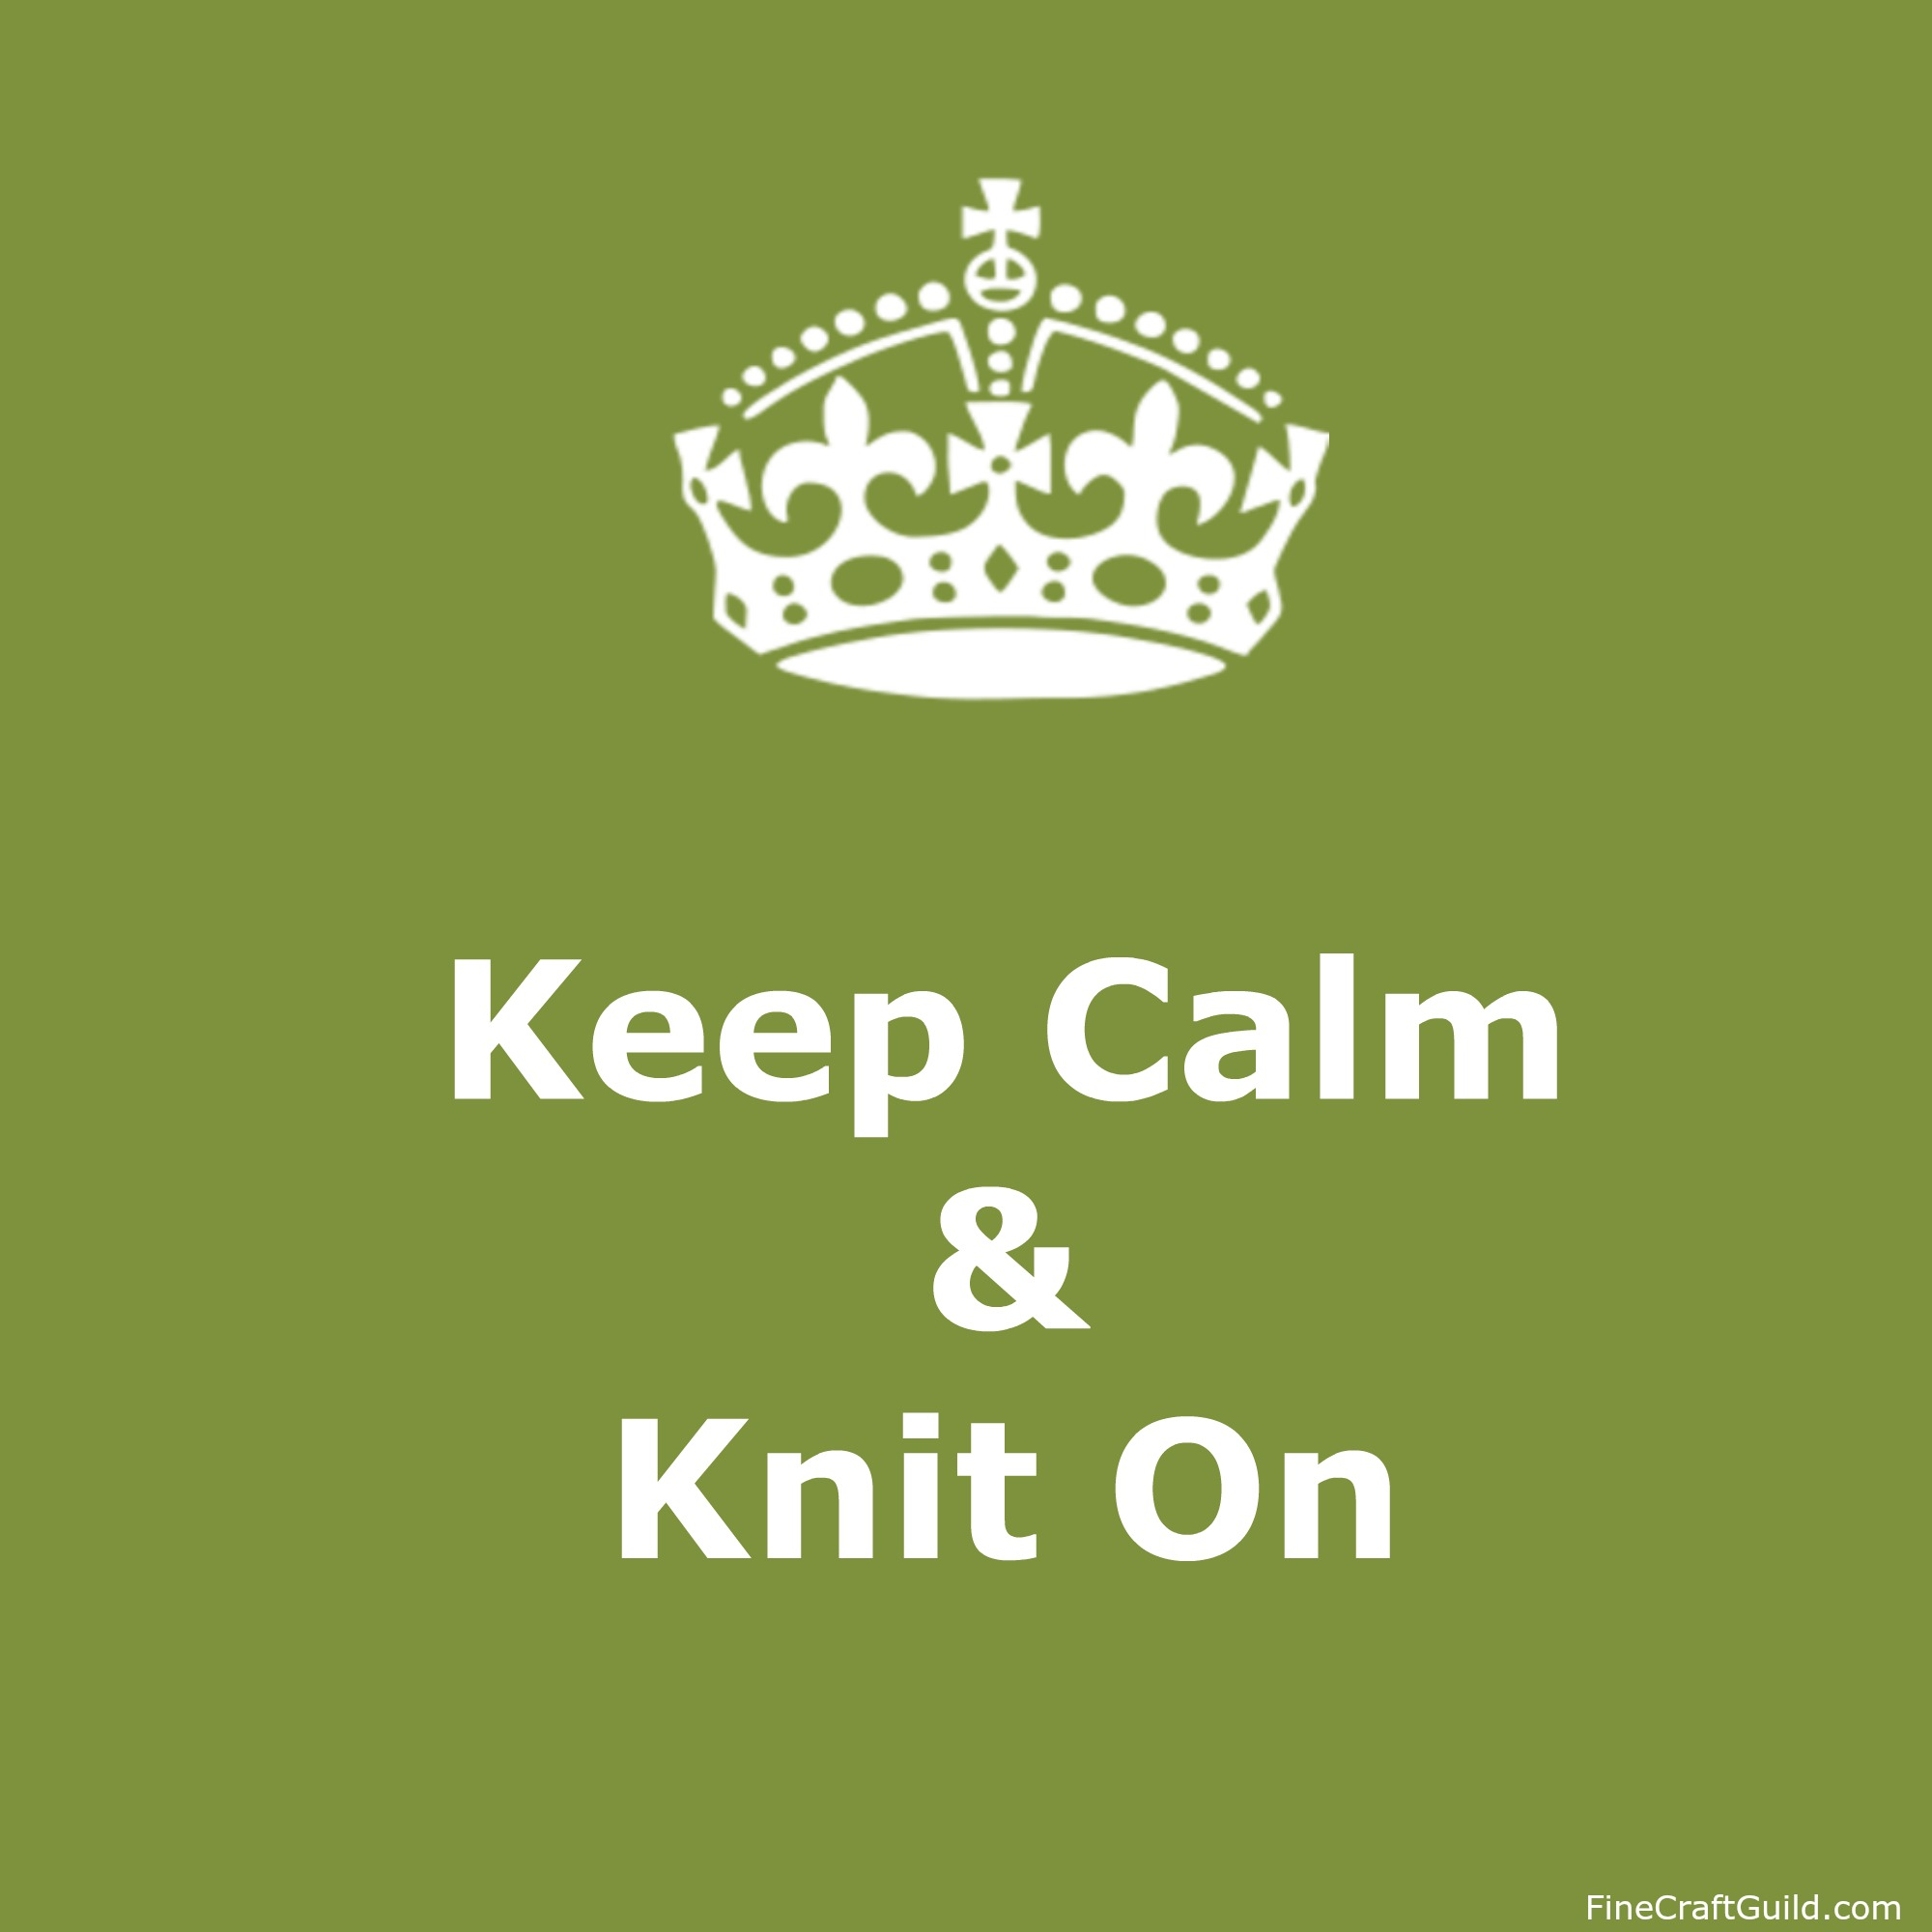 Keep Calm Gallery for Crafters